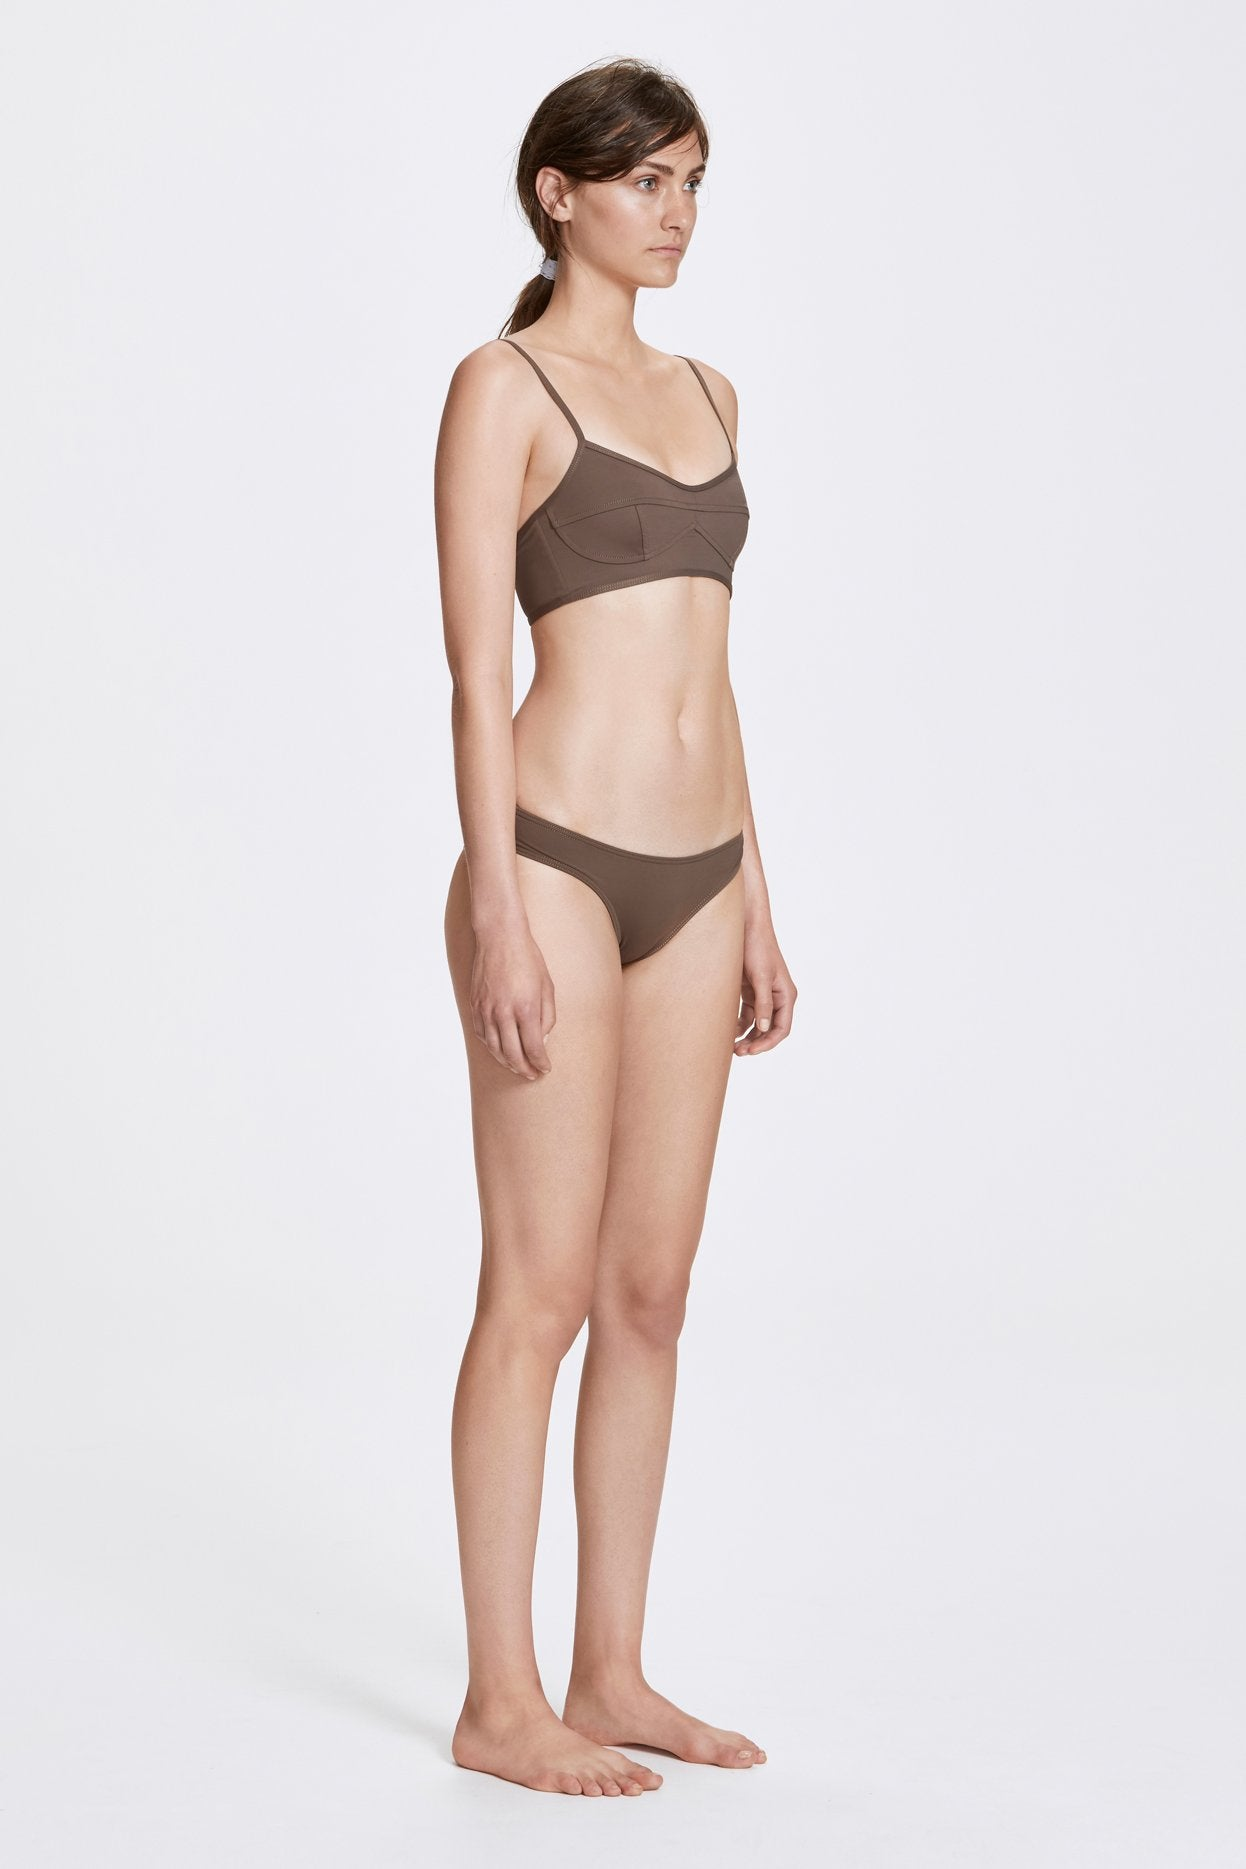 Her Line Suzi Swimwear Set Terra Brown Side